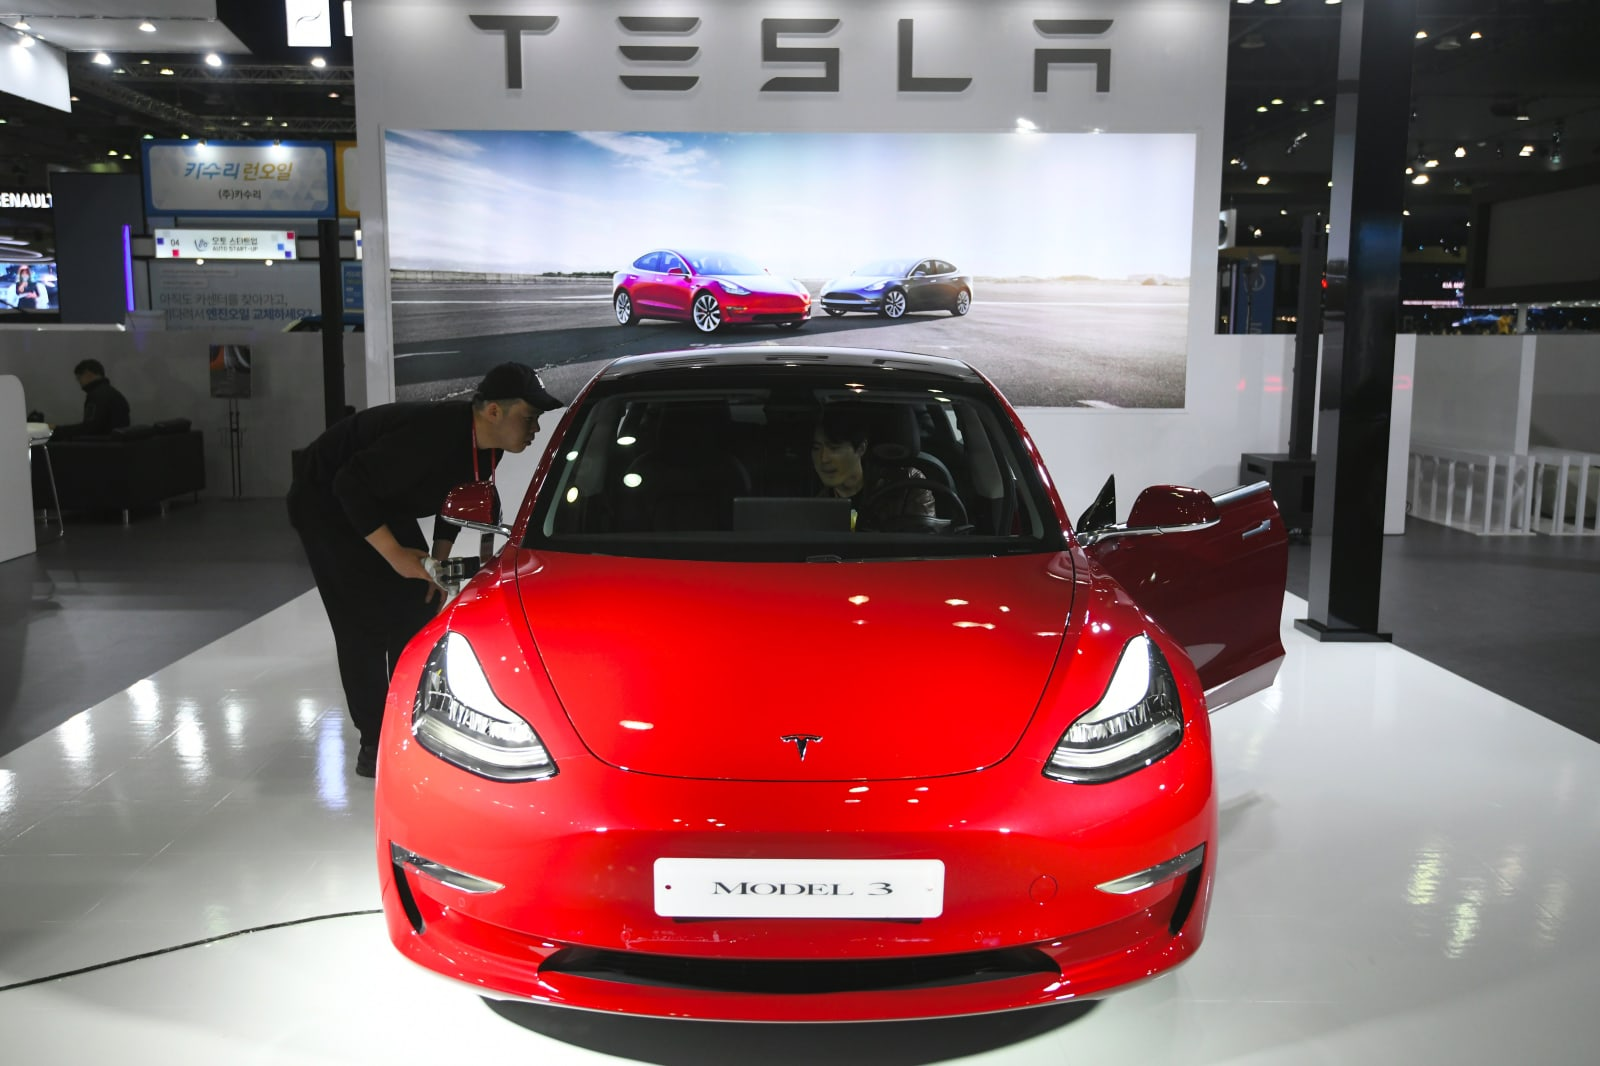 Tesla is quietly developing its own EV battery cells